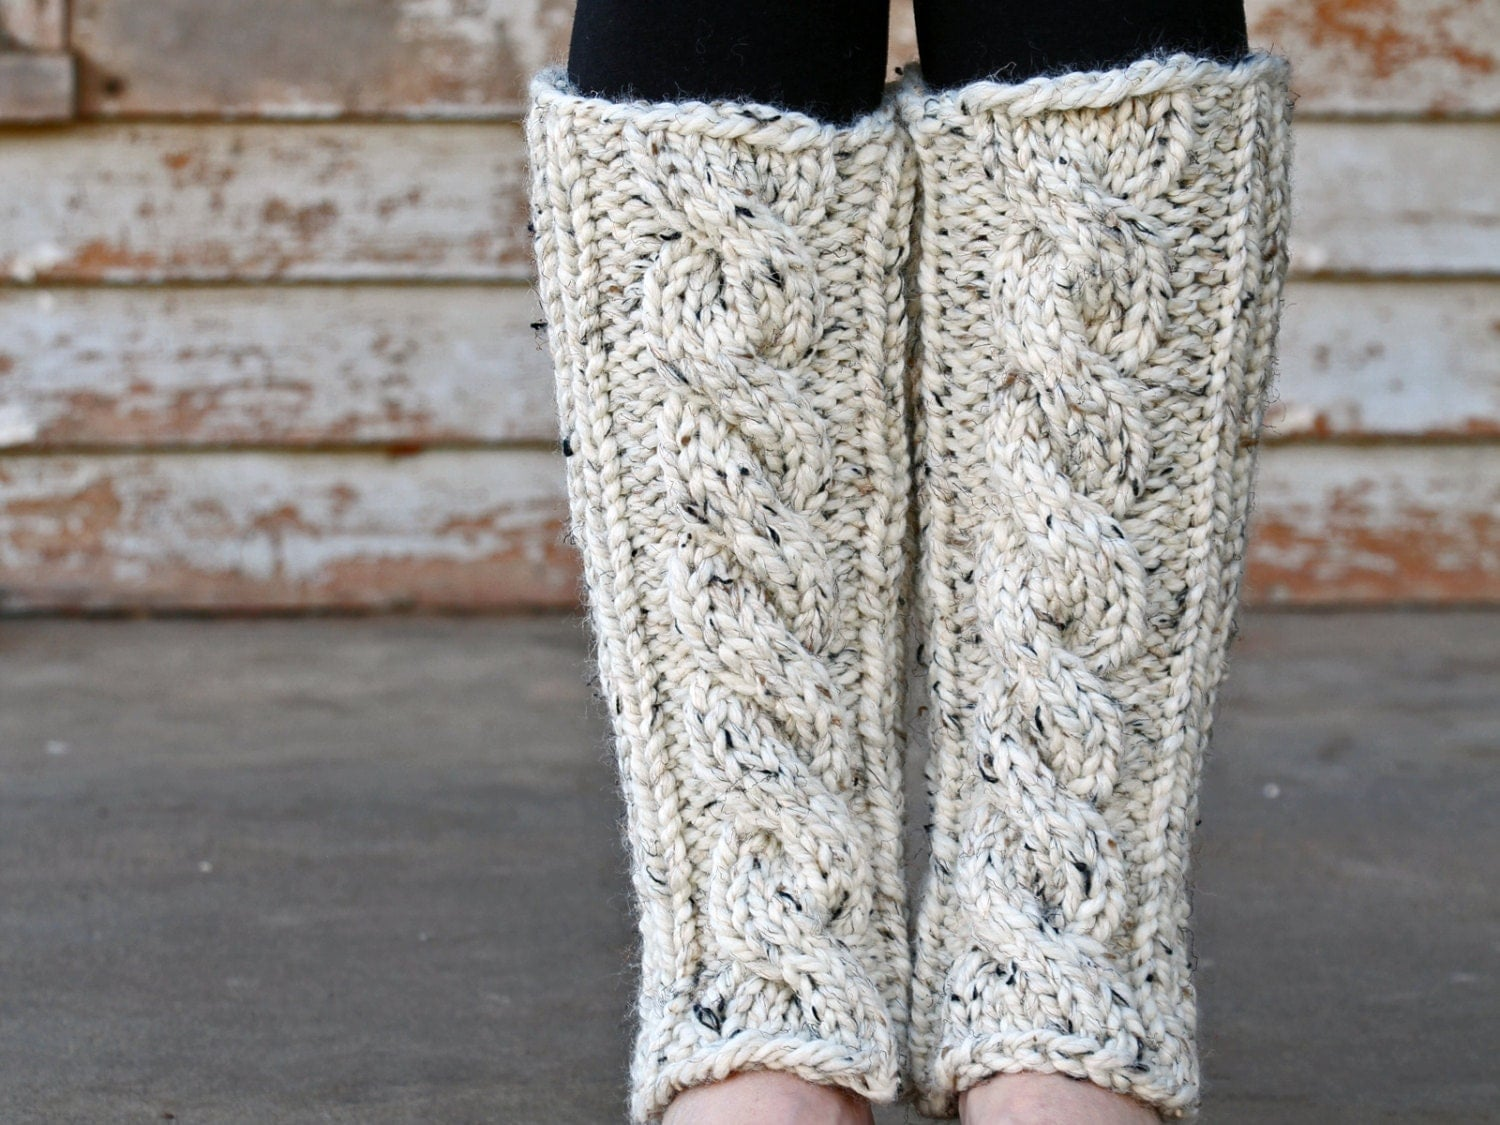 Knitting Pattern Leg Warmers Bulky Yarn : Cable Knit Leg Warmers Knitting PATTERN INVENTIVENESS a